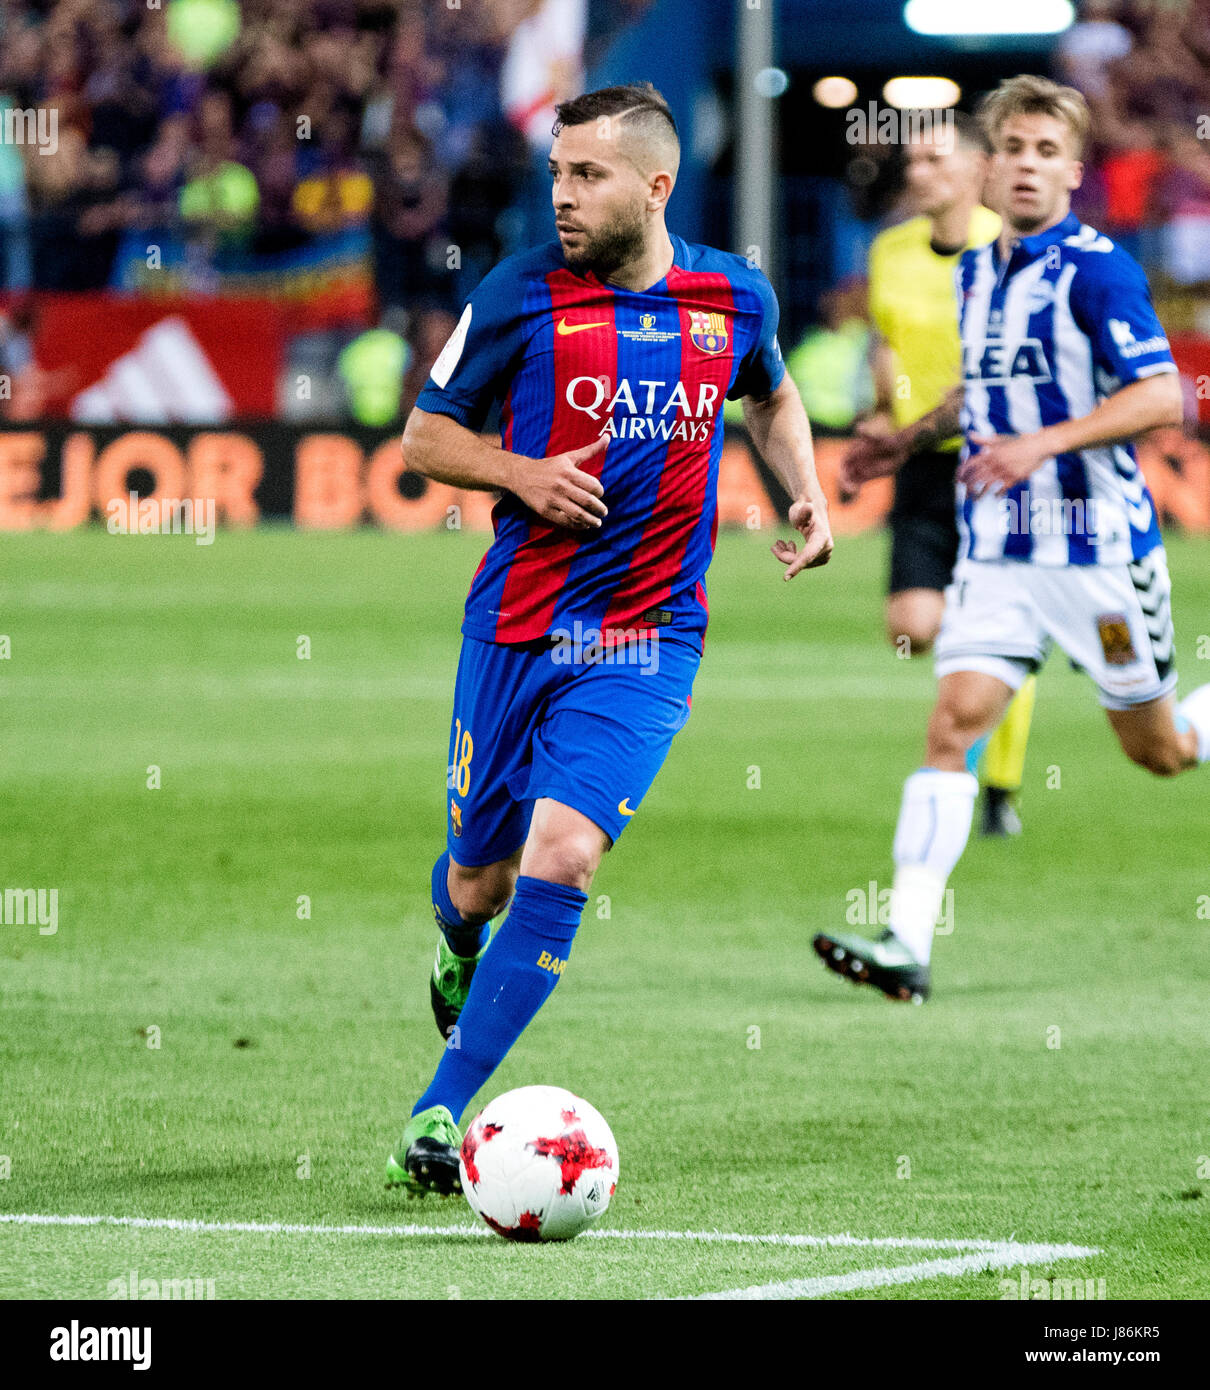 Madrid, Spain. 27th May, 2017. Jordi Alba (FC Barcelona) in action during the football match of Final of Spanish - Stock Image